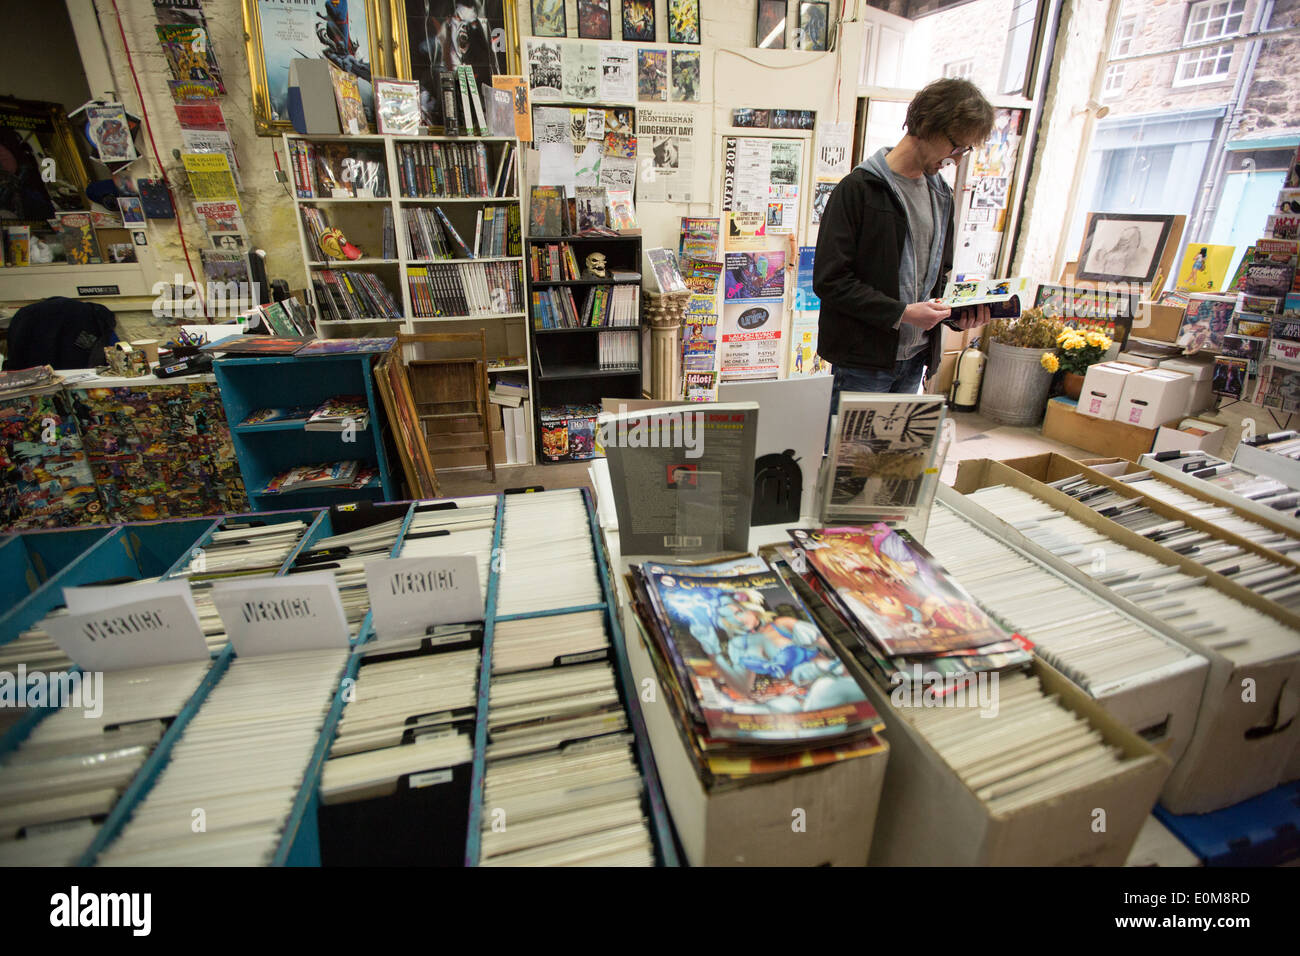 Deadhead Comics shop in Candlemaker Row, in Edinburgh, Scotland - Stock Image